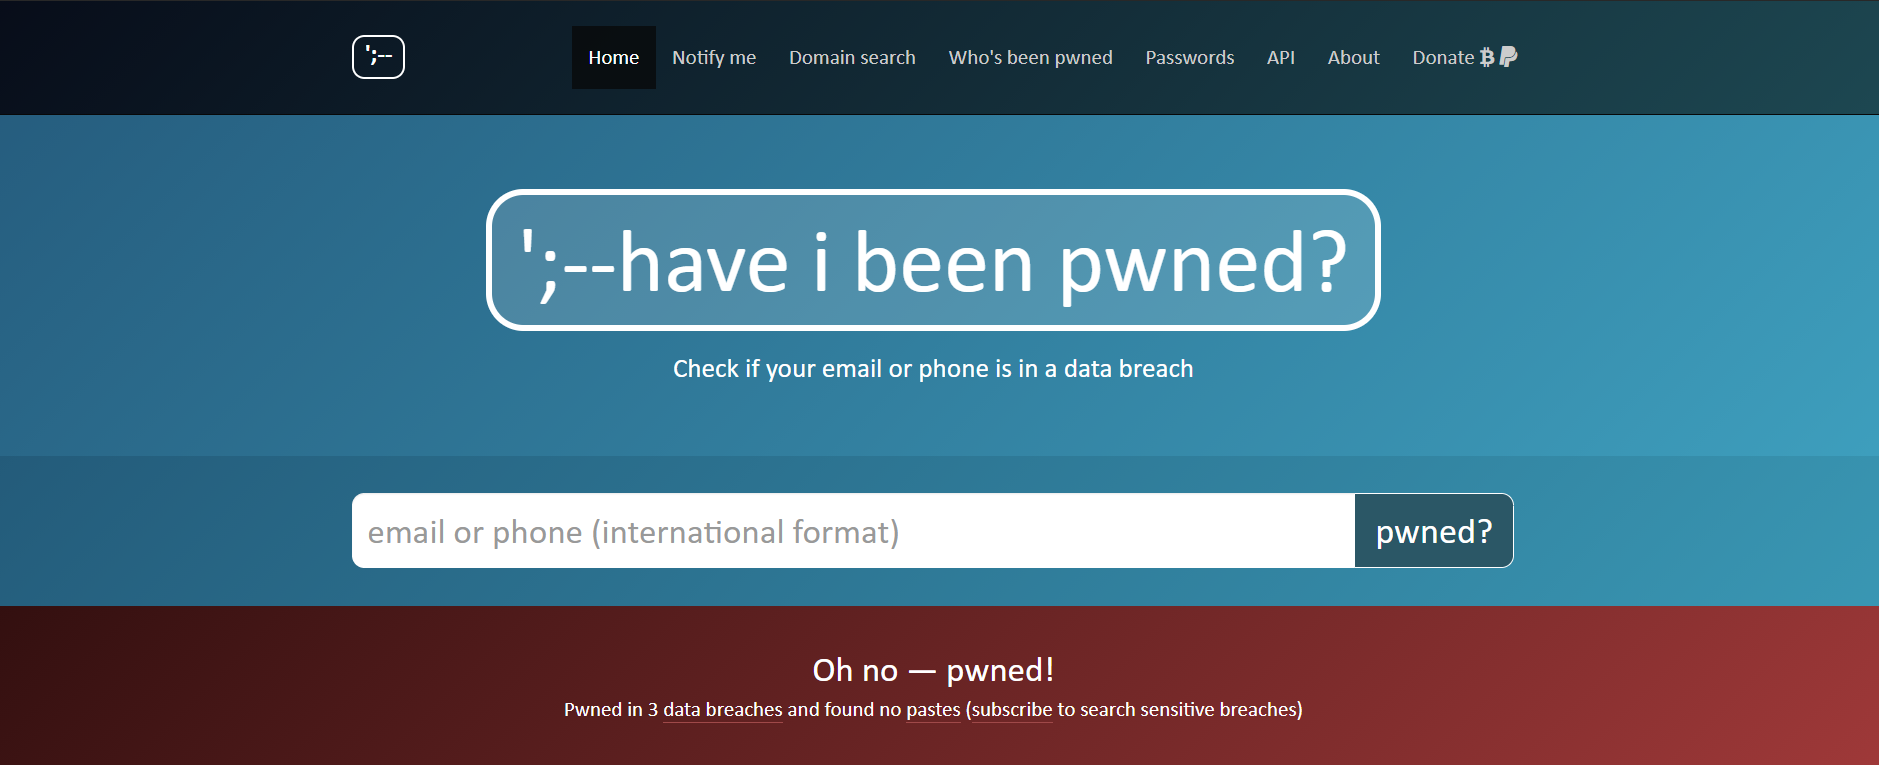 Use This Handy Site to Find Out if You've Been Affected by a Data Breach